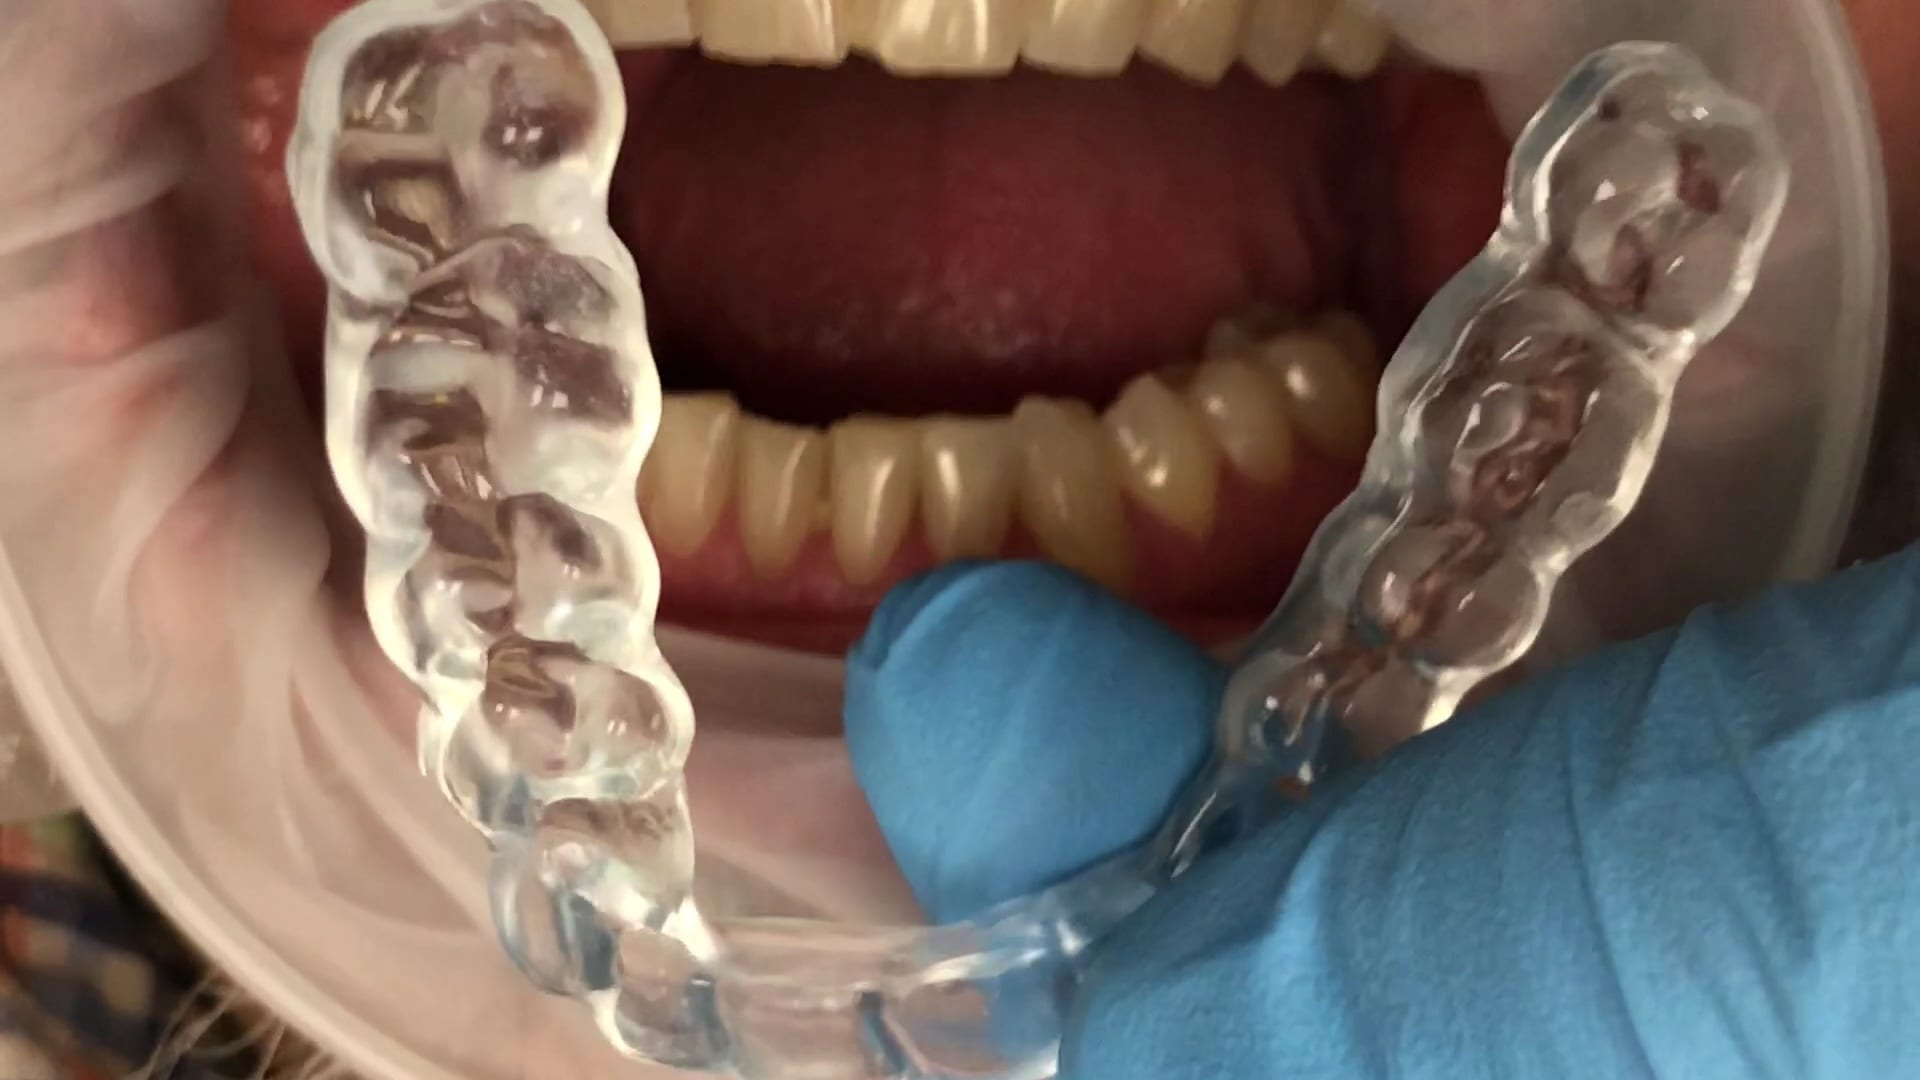 Digitally Desgined and Milled Occlusal Guard